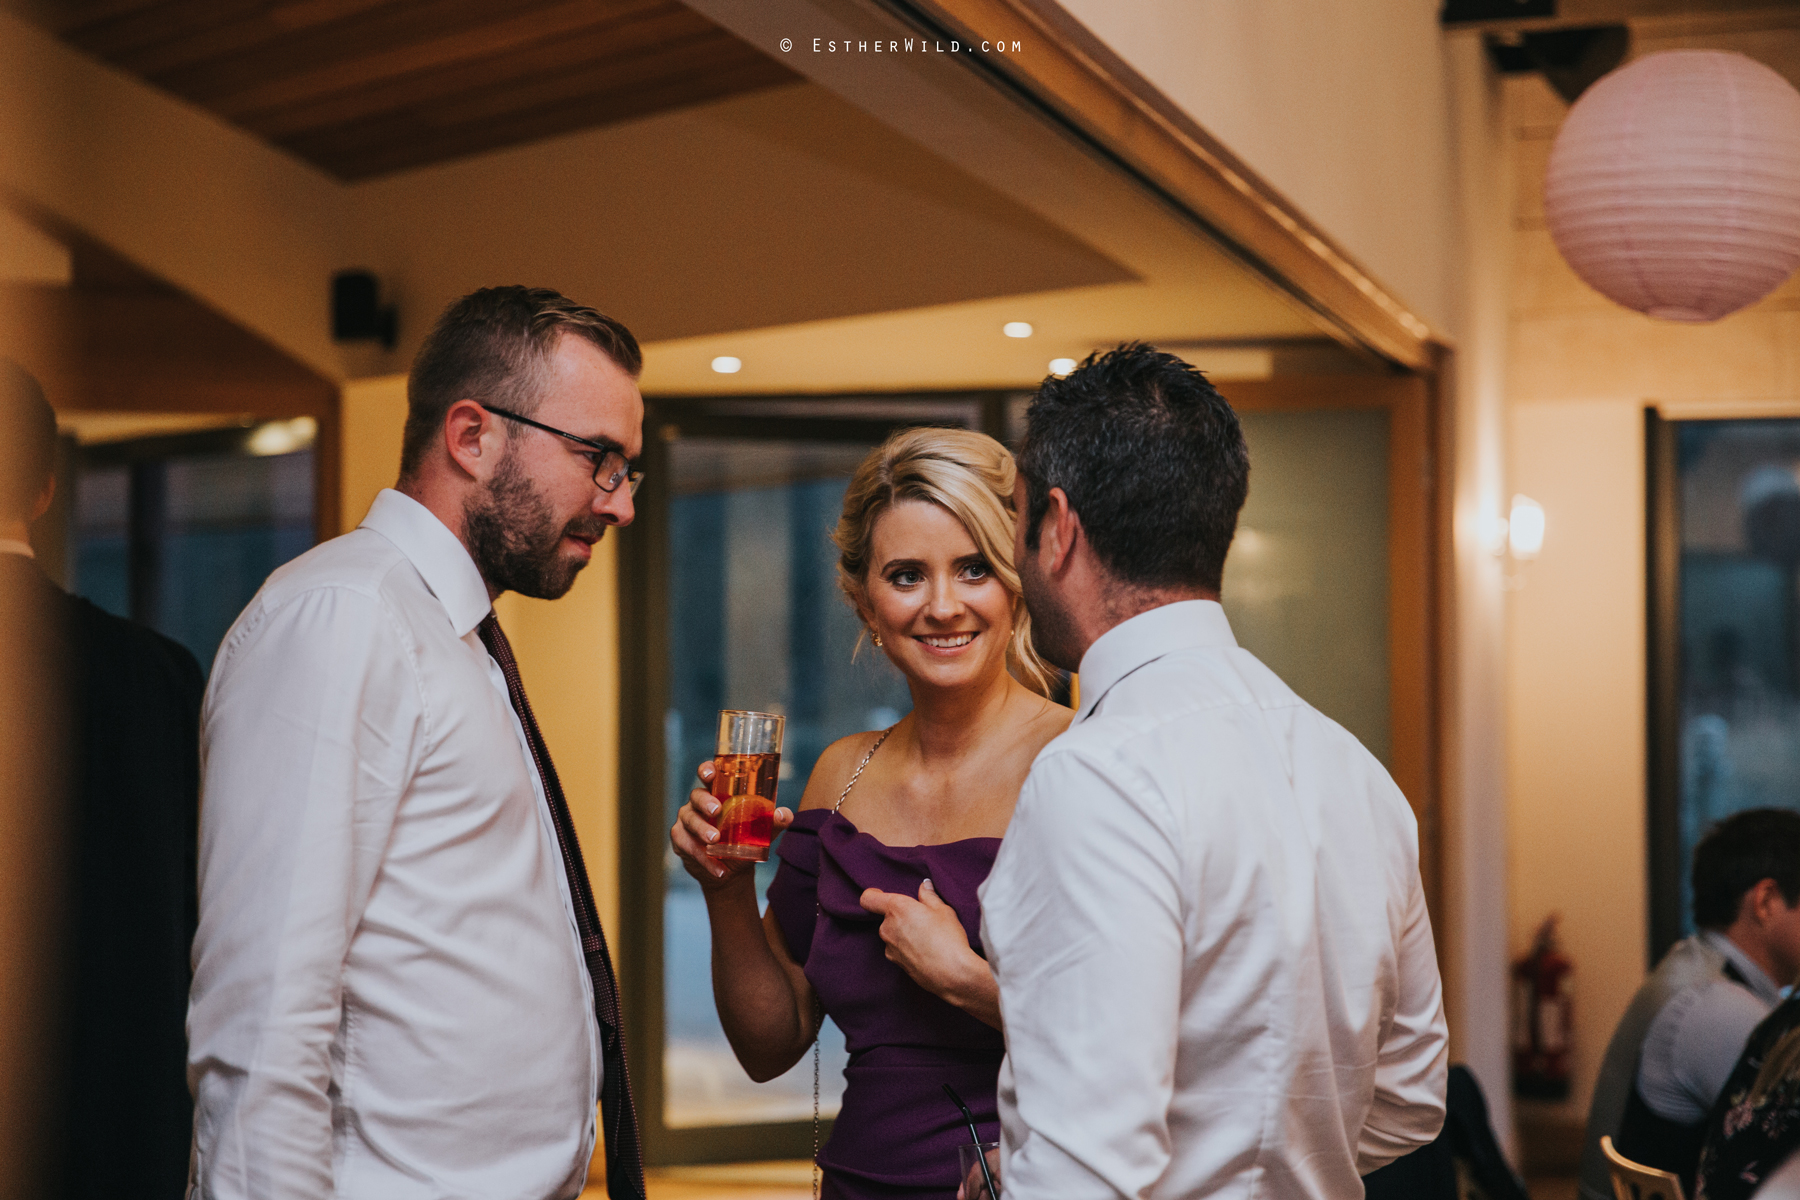 The_BoatHouse_Wedding_Venue_Ormesby_Norfolk_Broads_Boat_Wedding_Photography_Esther_Wild_Photographer_IMG_3339.jpg